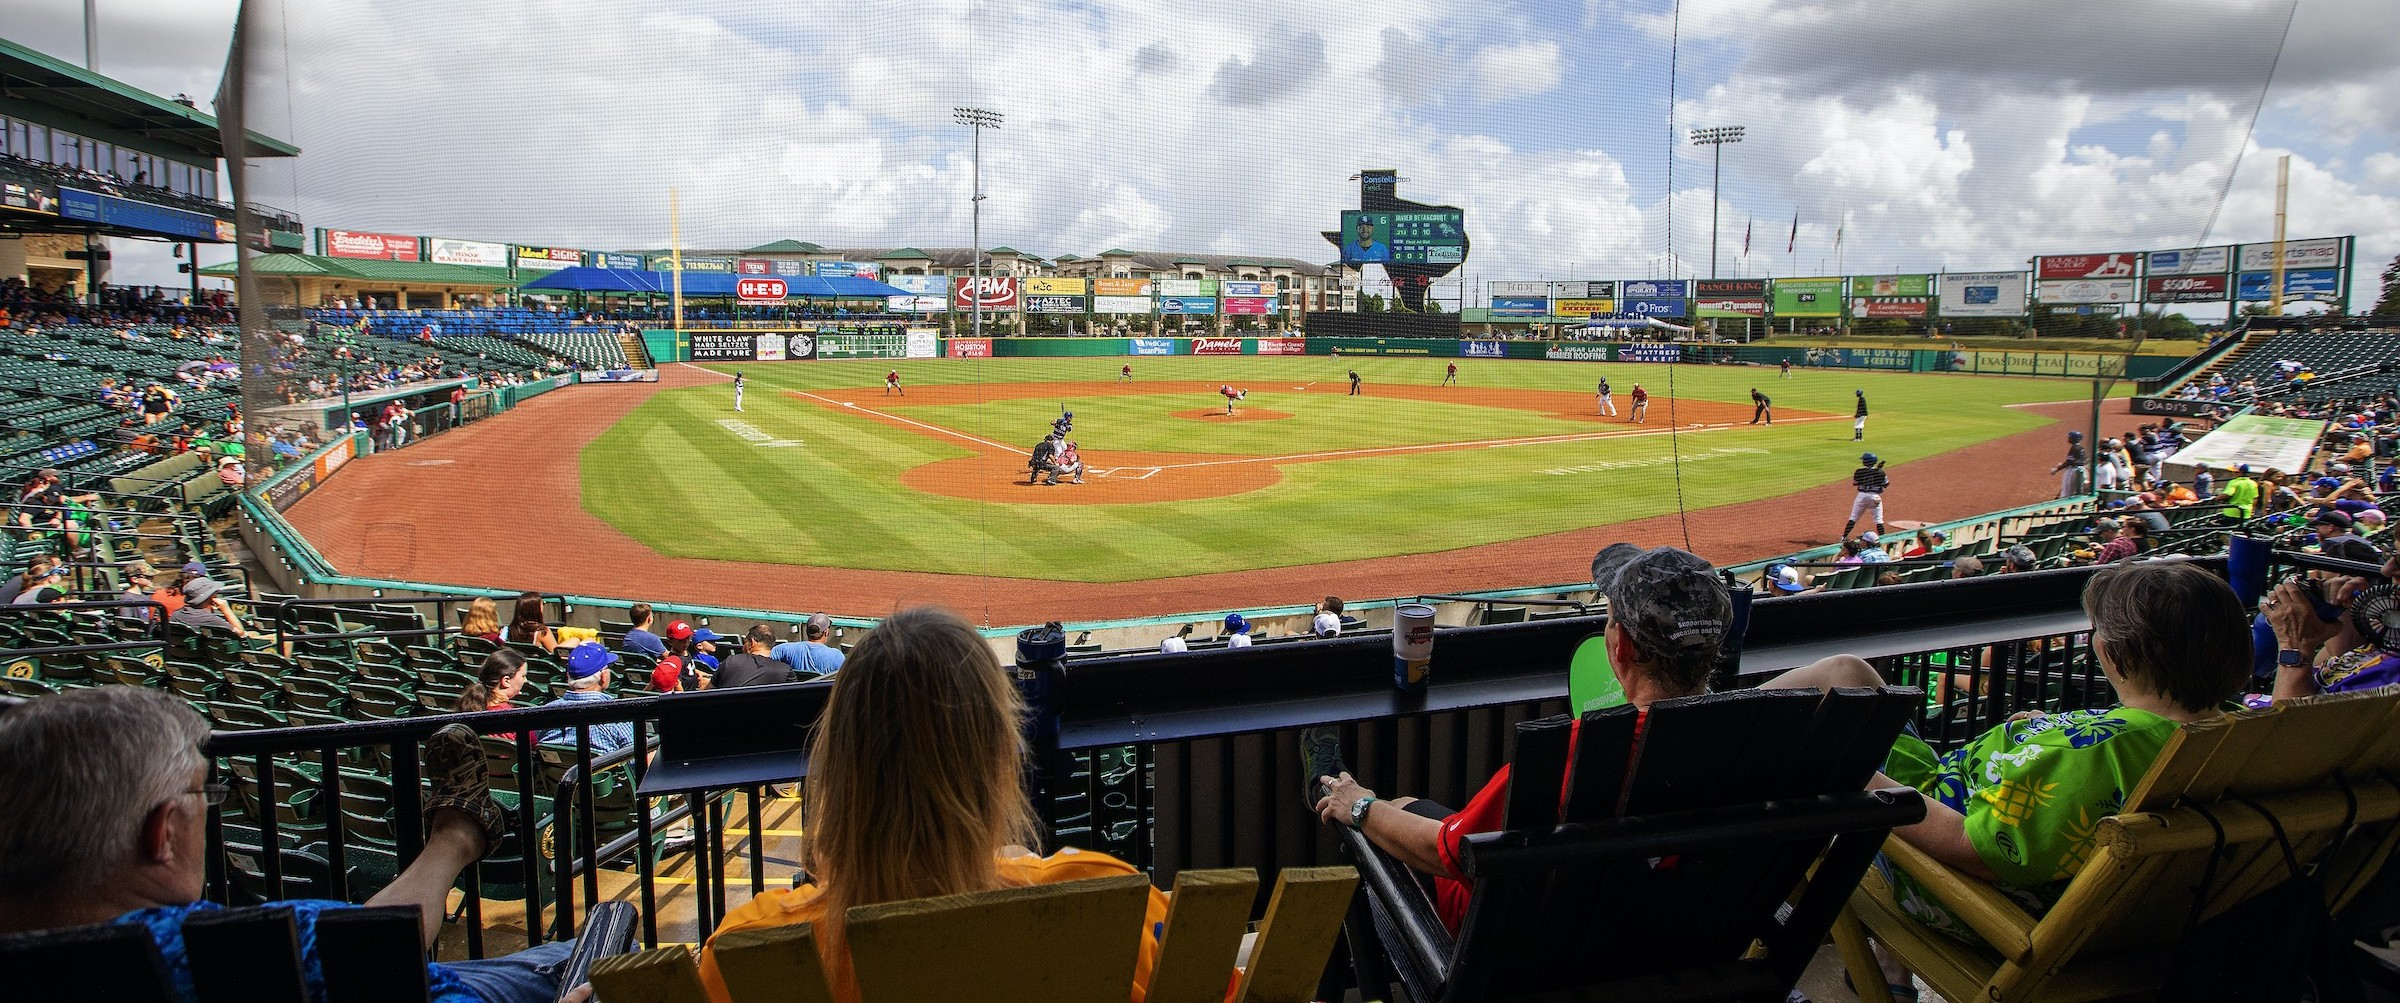 Constellation Field, Home of the Skeeters